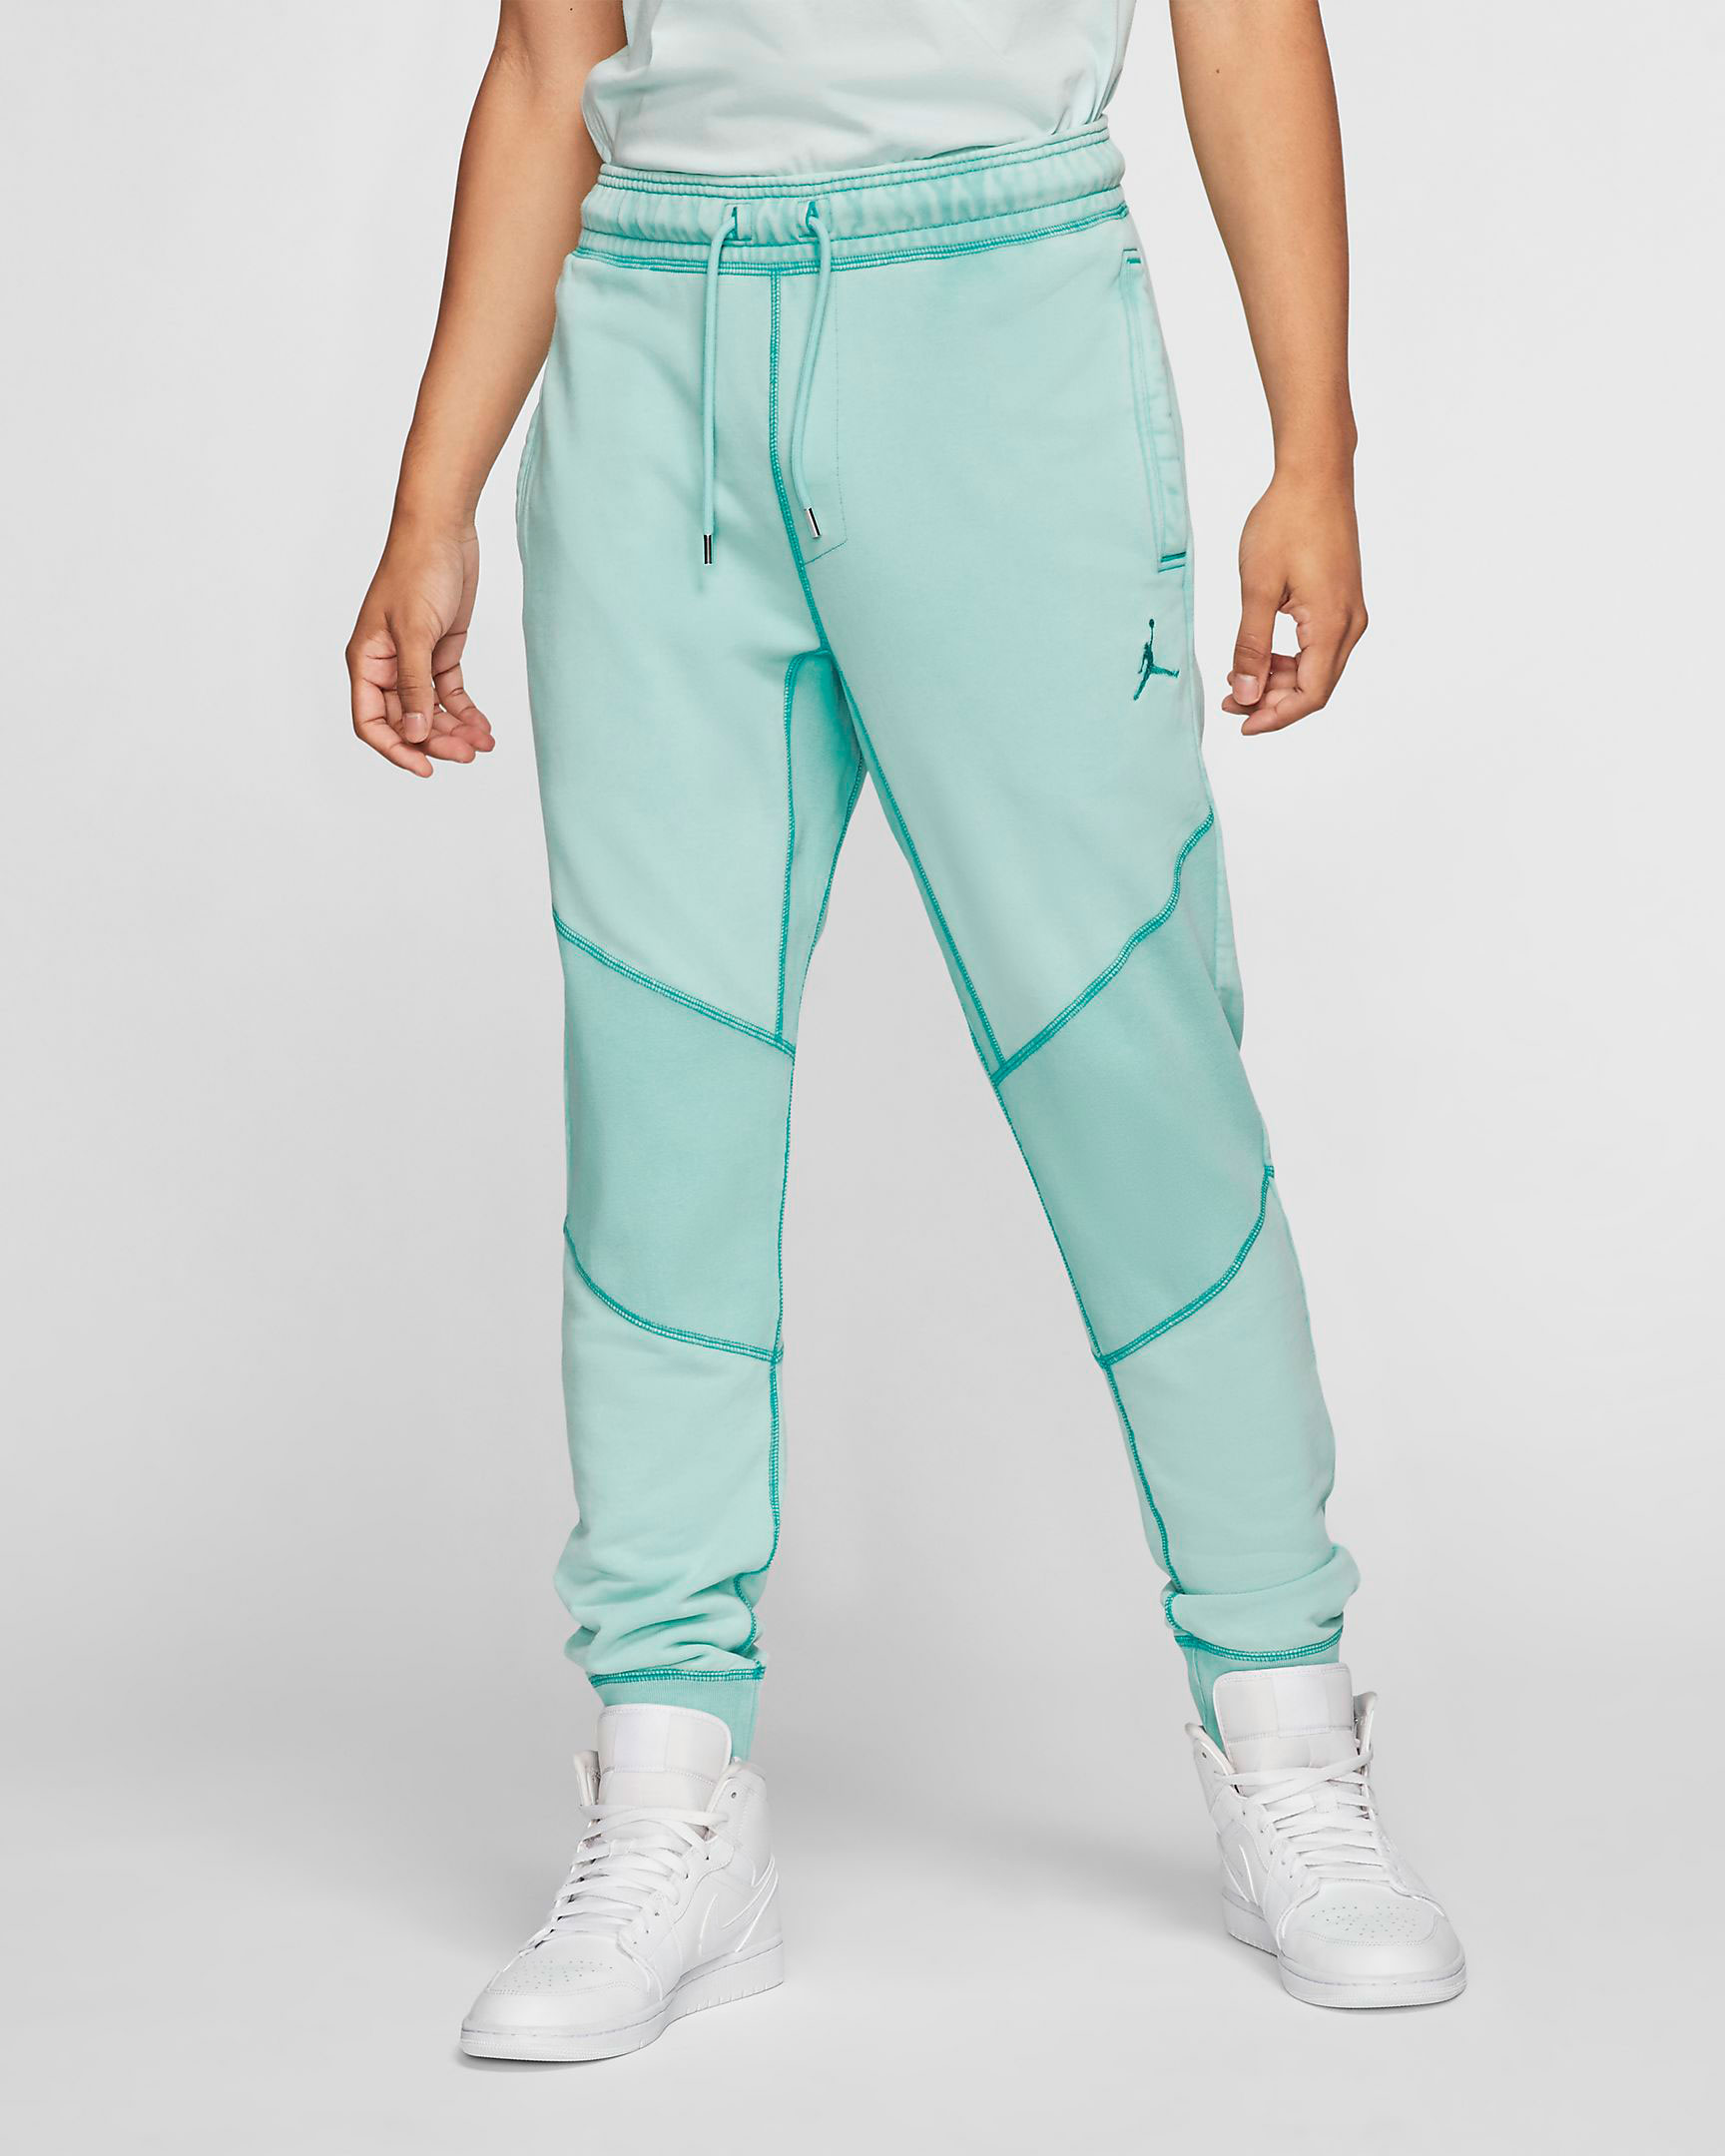 jordan-wings-washed-aqua-pants